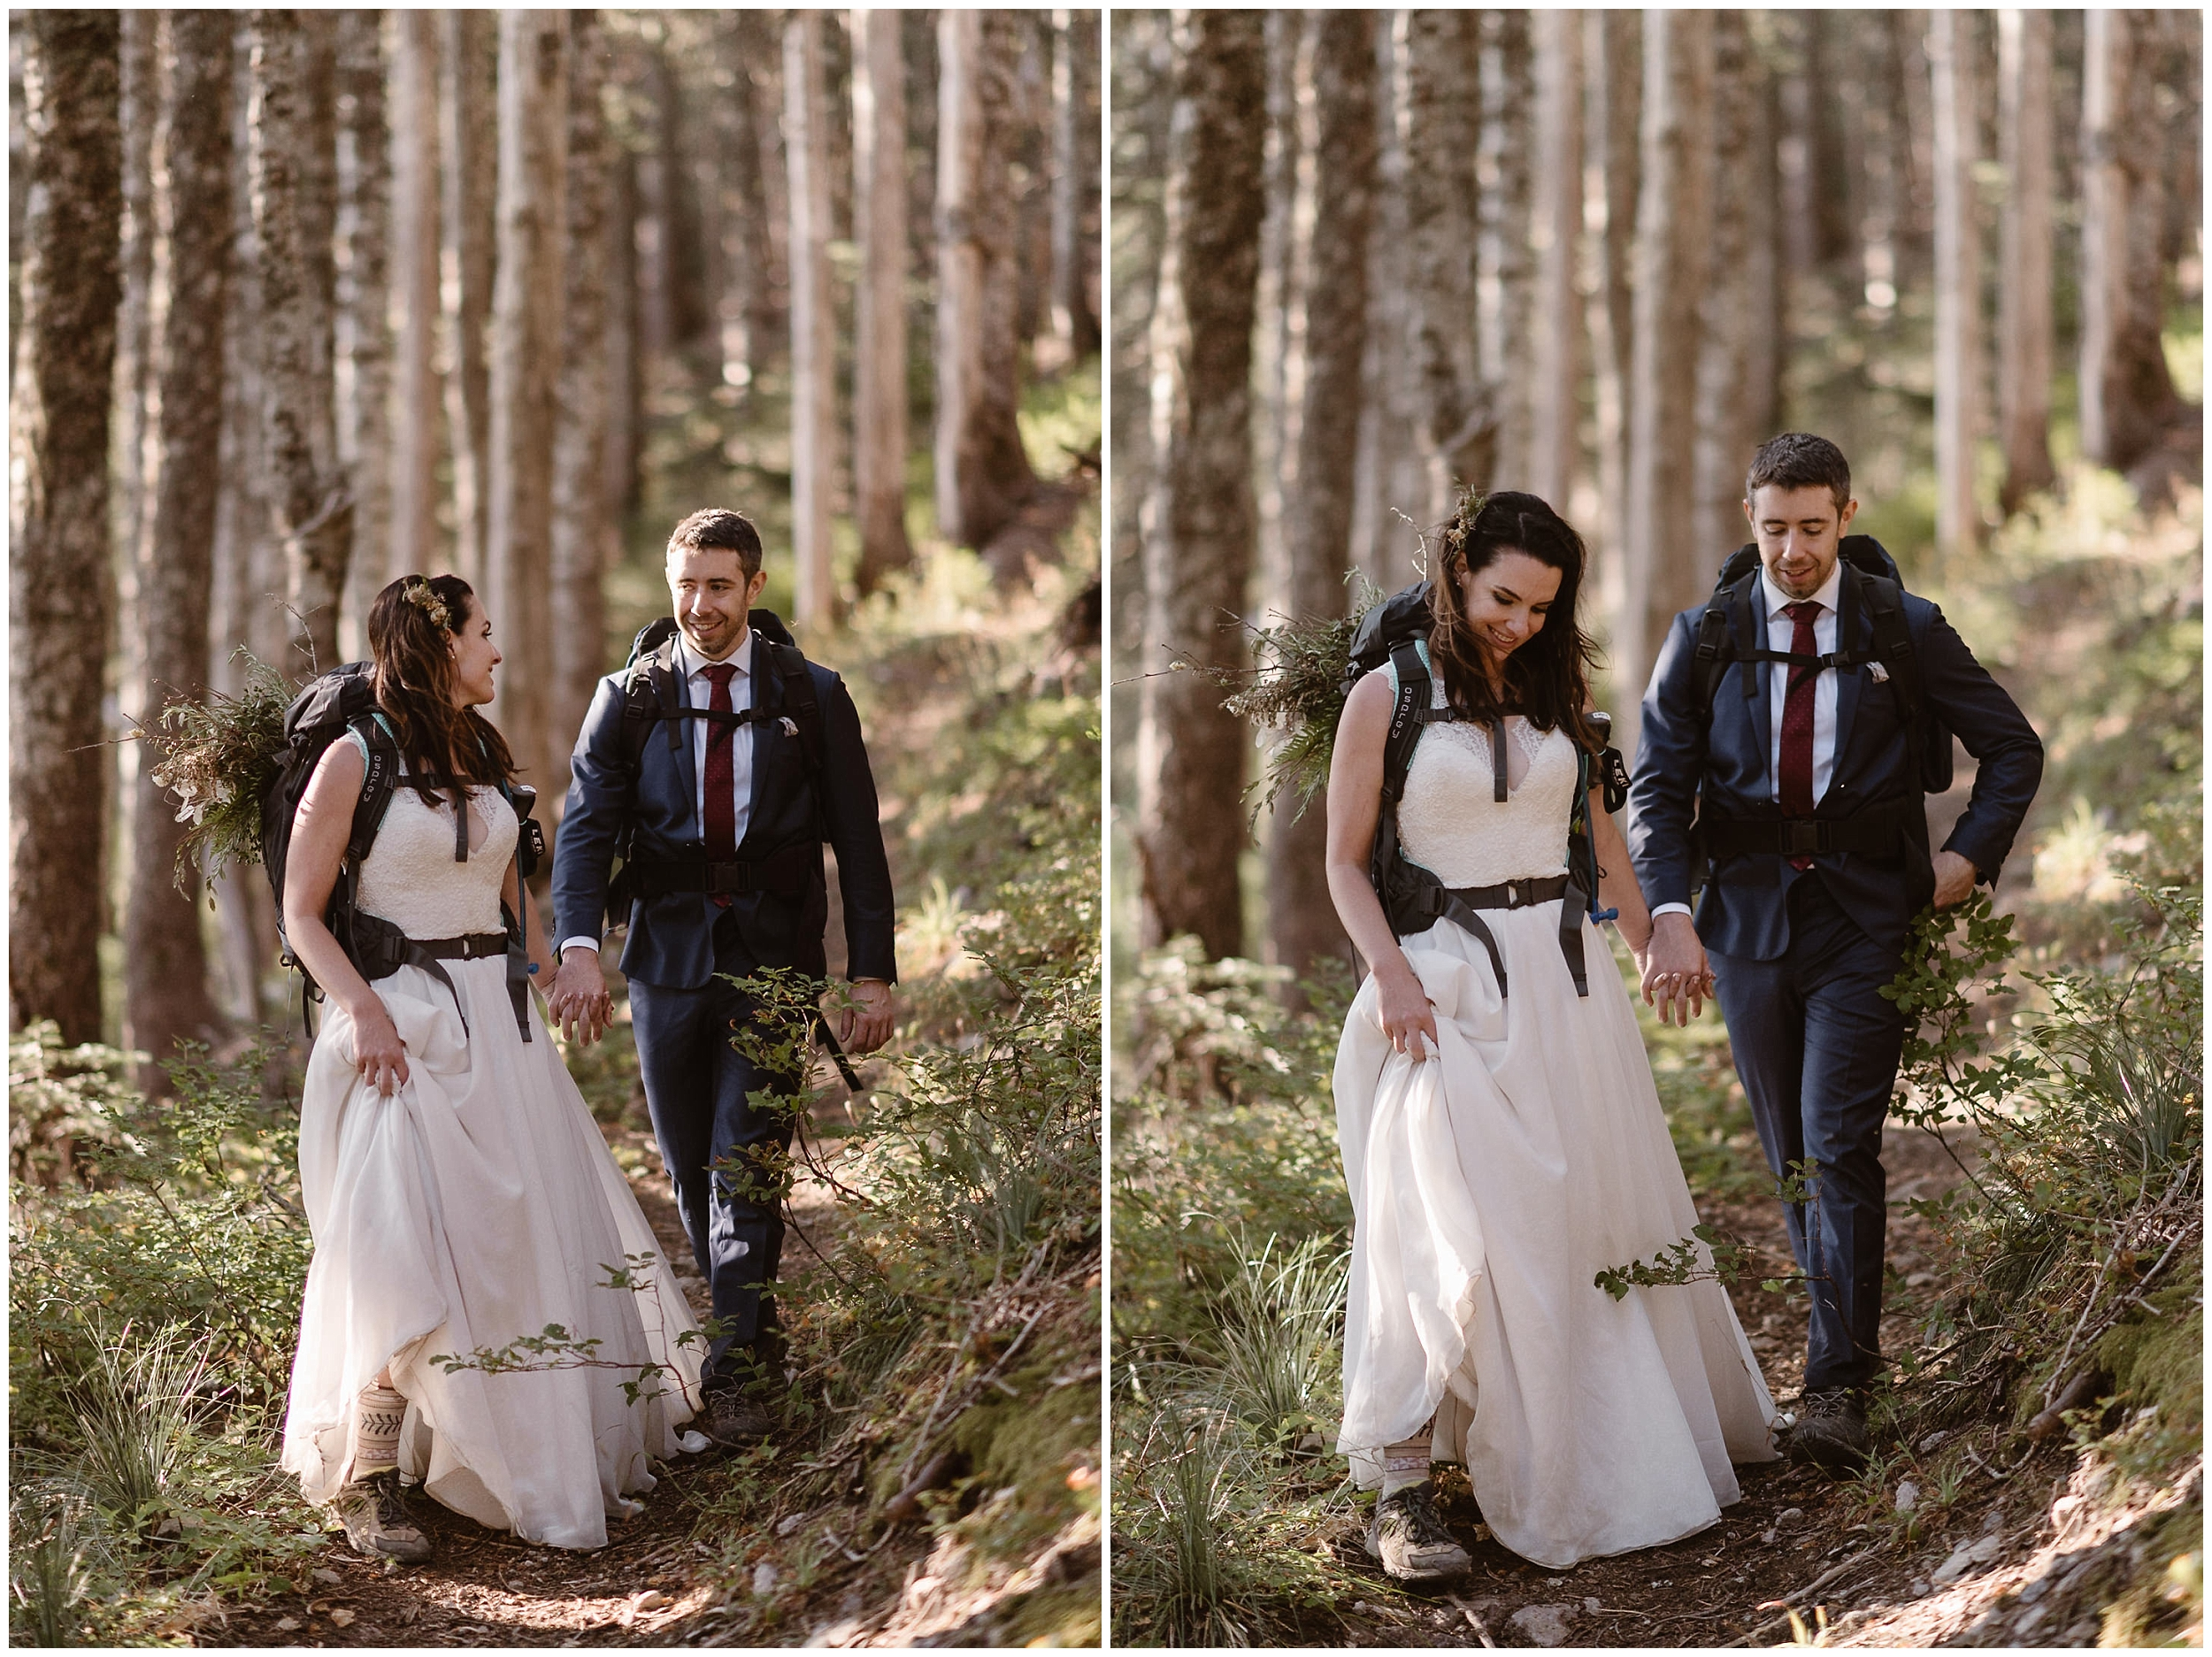 Still in their wedding attire, Lauryn and David hike back down the mountain from where they just elope in Washington state. Their North Cascades wedding was one of the many free places to get married in Washington state.